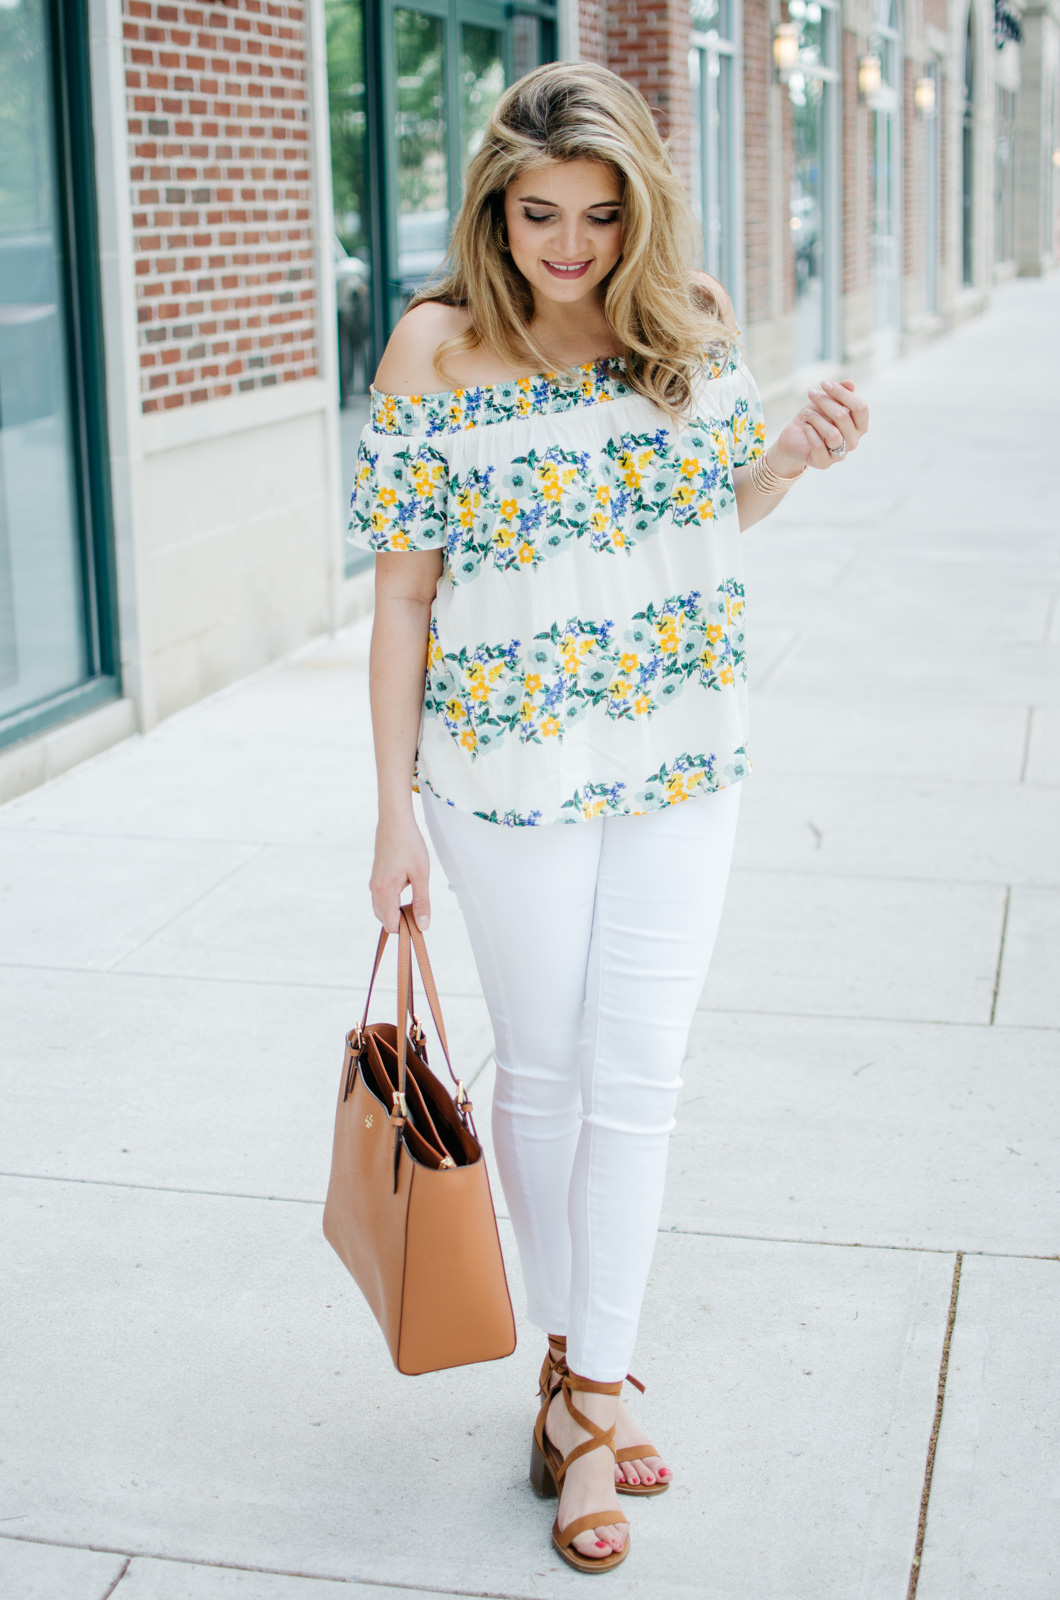 all white outfit for spring - white jeans outfit | For more spring weekend outfits, head to bylaurenm.com